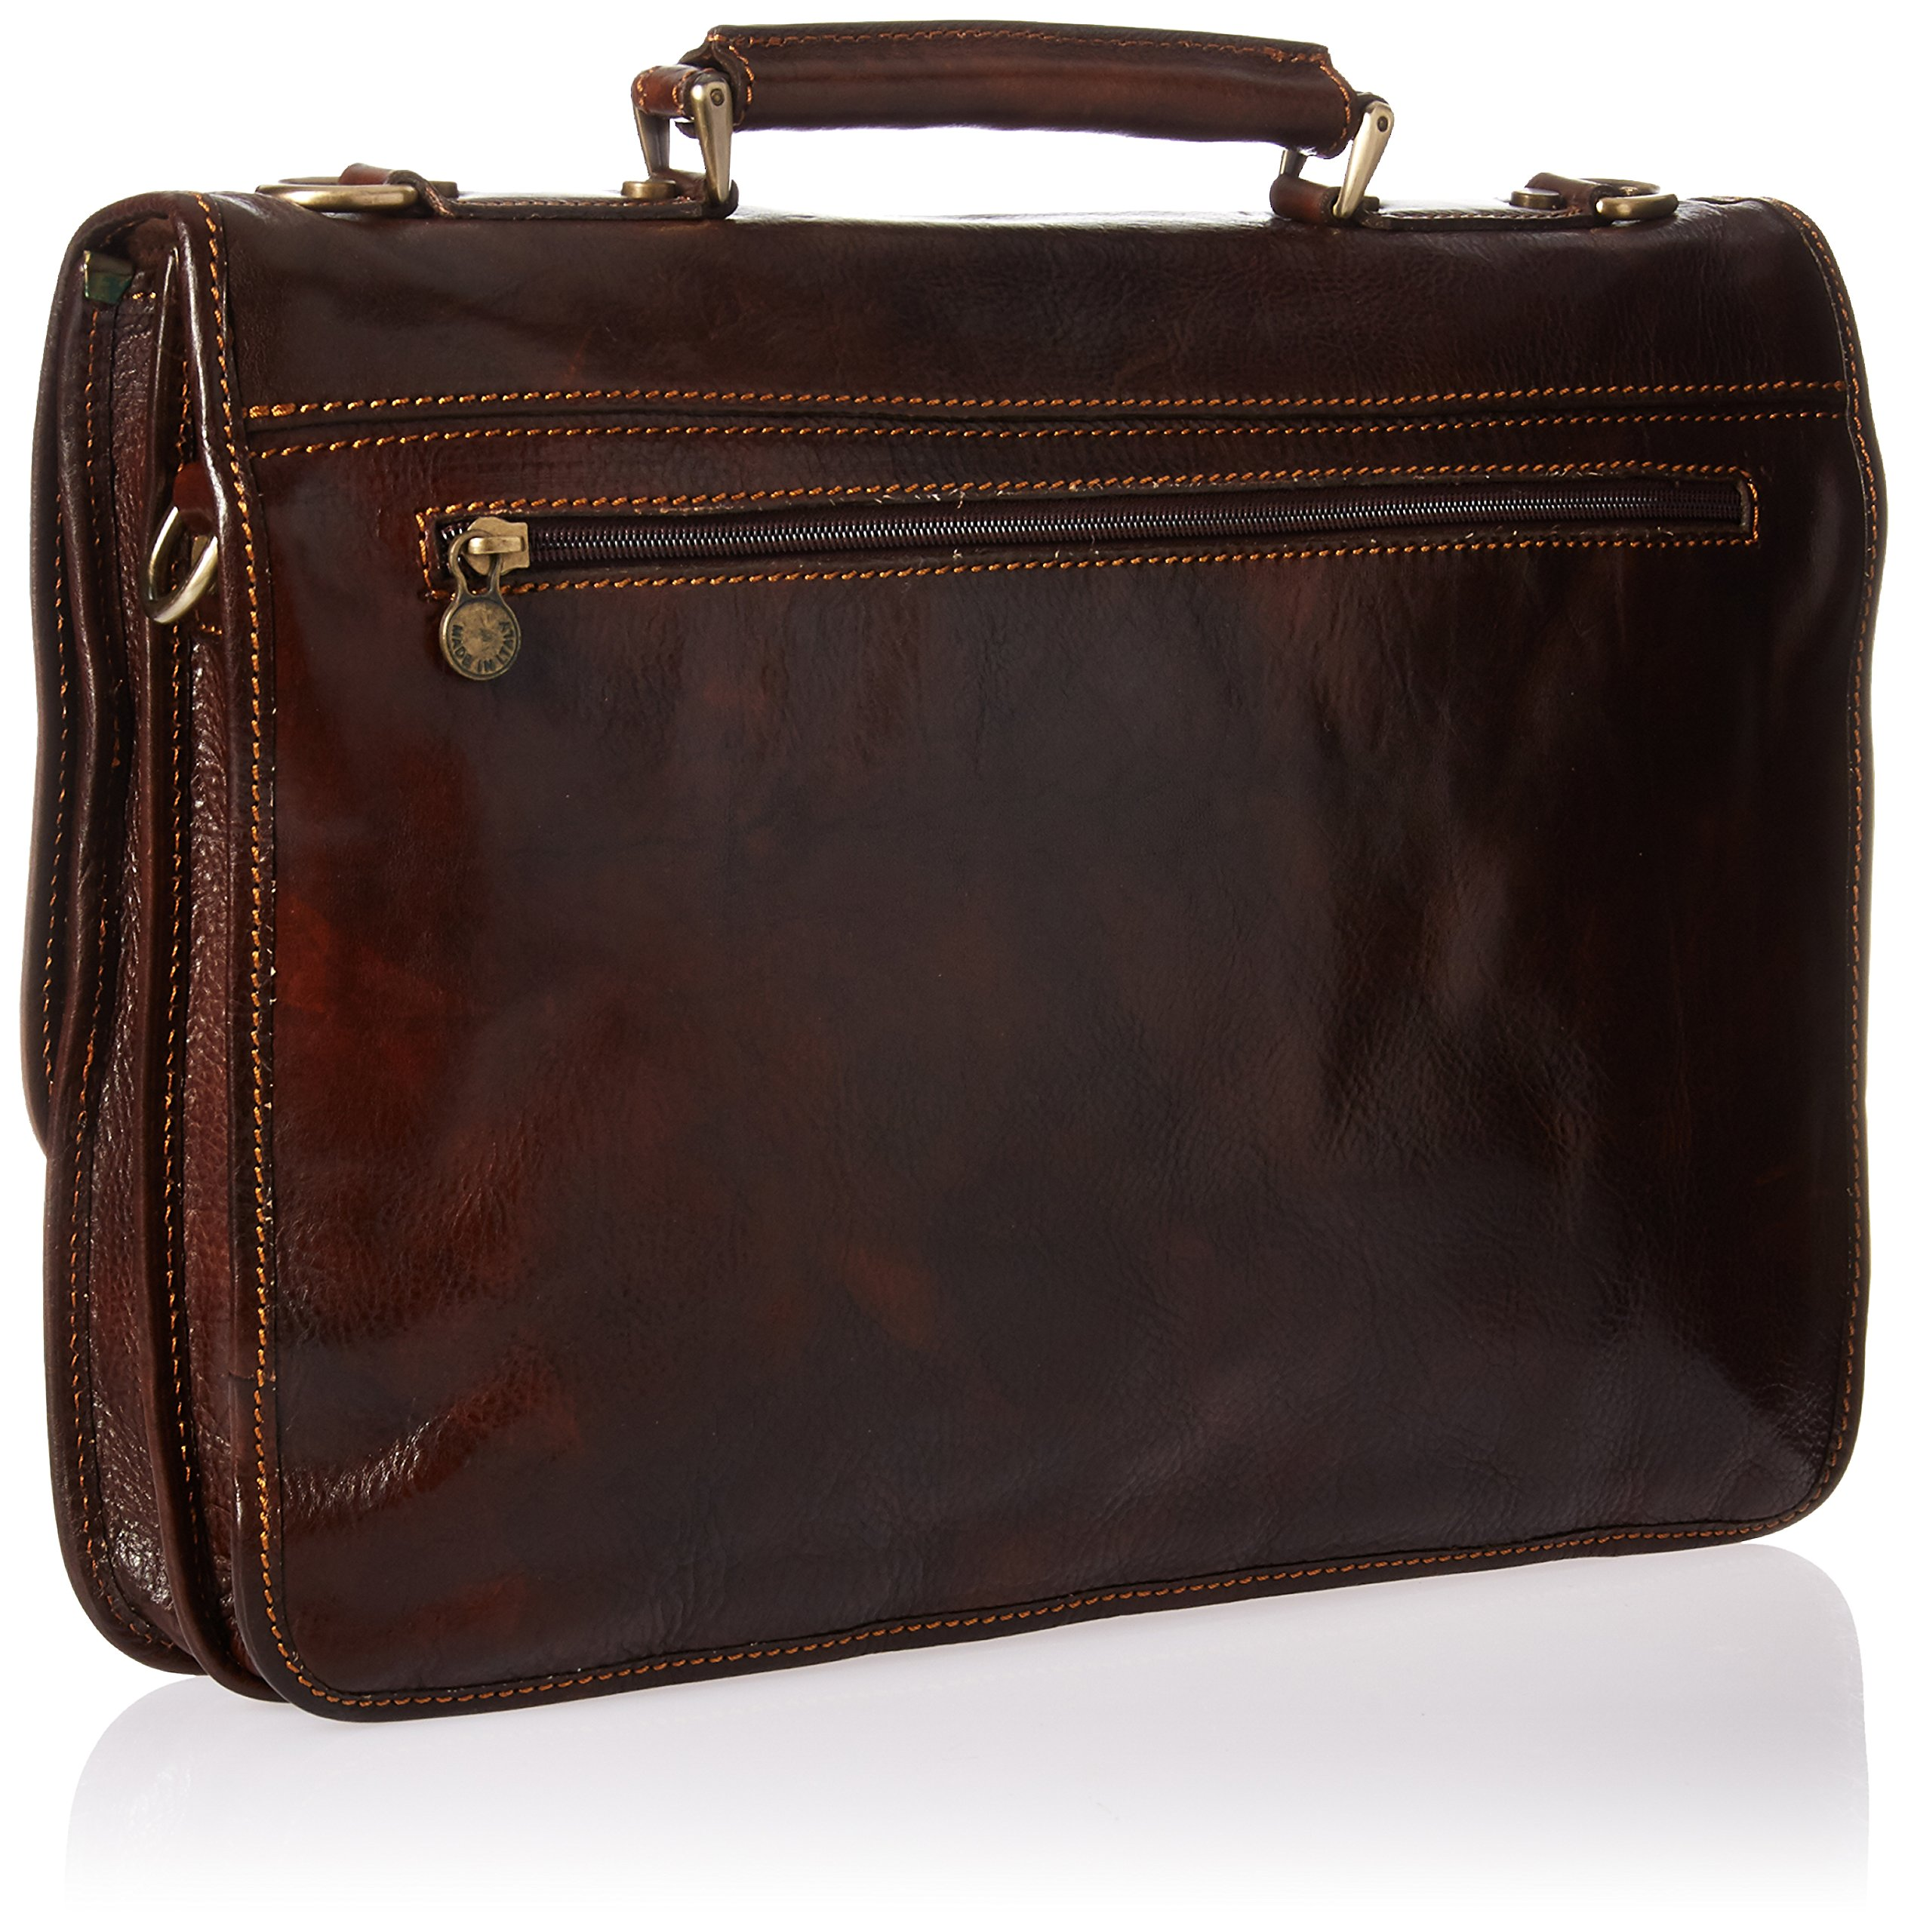 Luggage Depot USA, LLC Men's Alberto Bellucci Italian Leather Double Gusset D. Brn Laptop Messenger Bag, Dark Brown, One Size by Luggage Depot USA, LLC (Image #2)